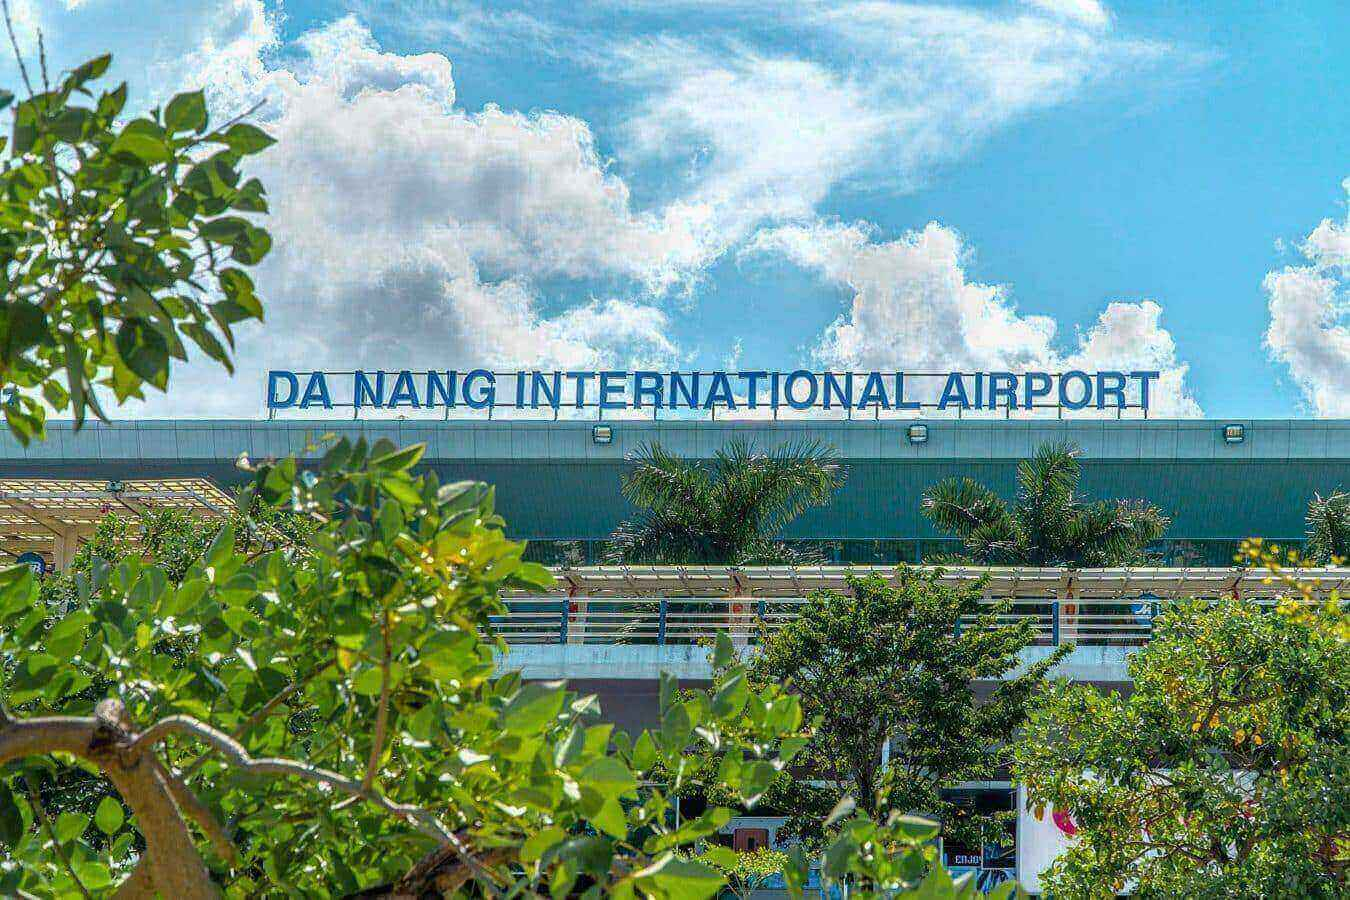 Exterior of Da Nang Airport - Da Nang to Hoi An